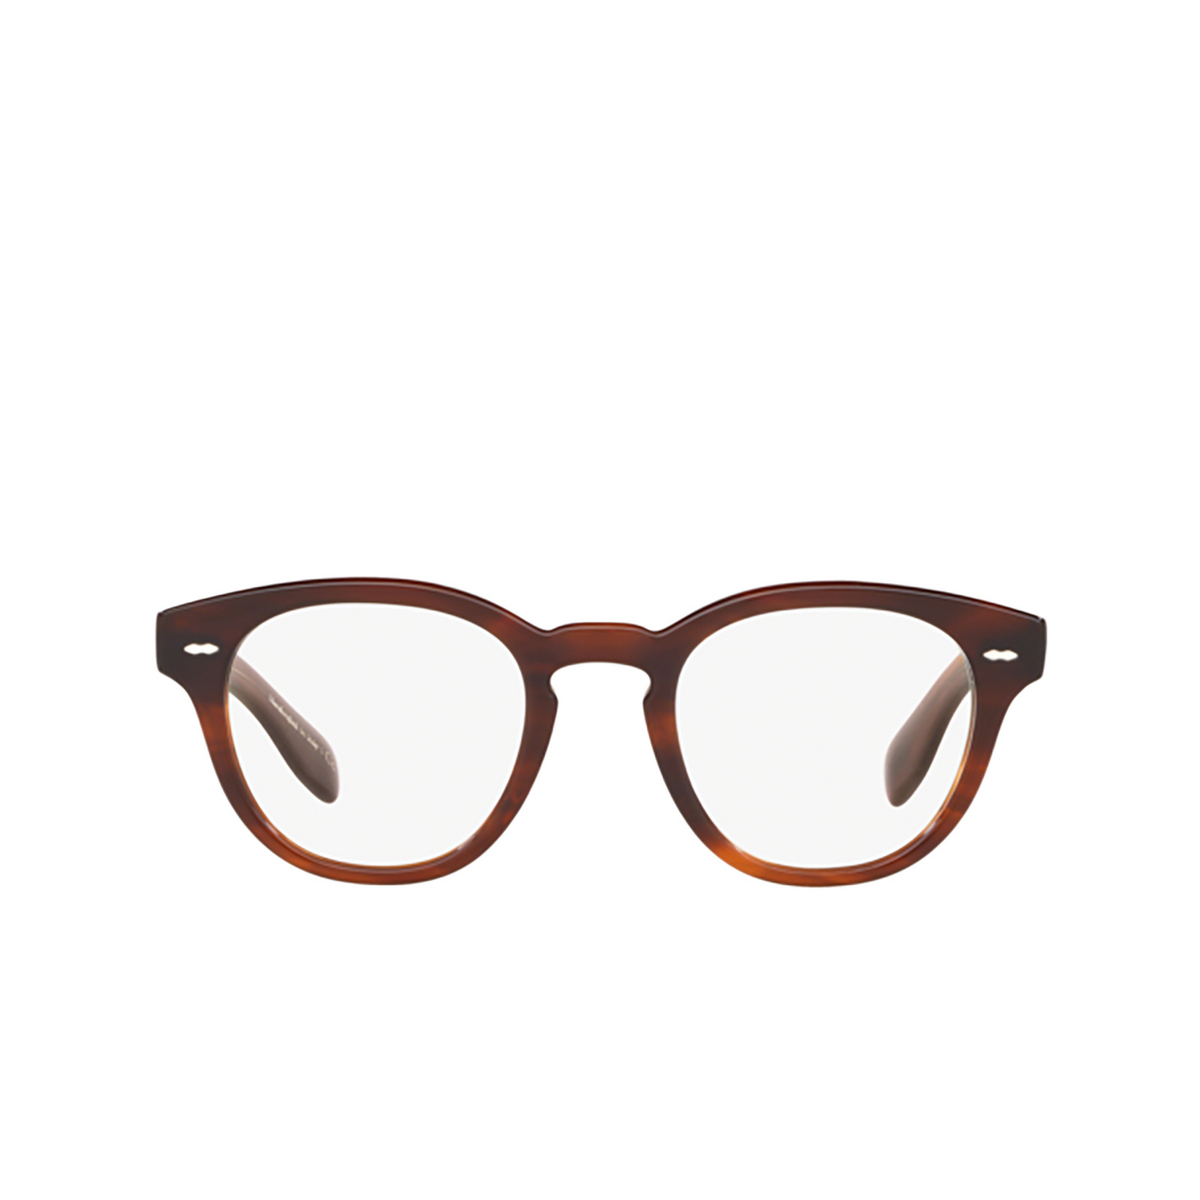 Oliver Peoples® Round Eyeglasses: Cary Grant OV5413U color Grant Tortoise 1679 - front view.